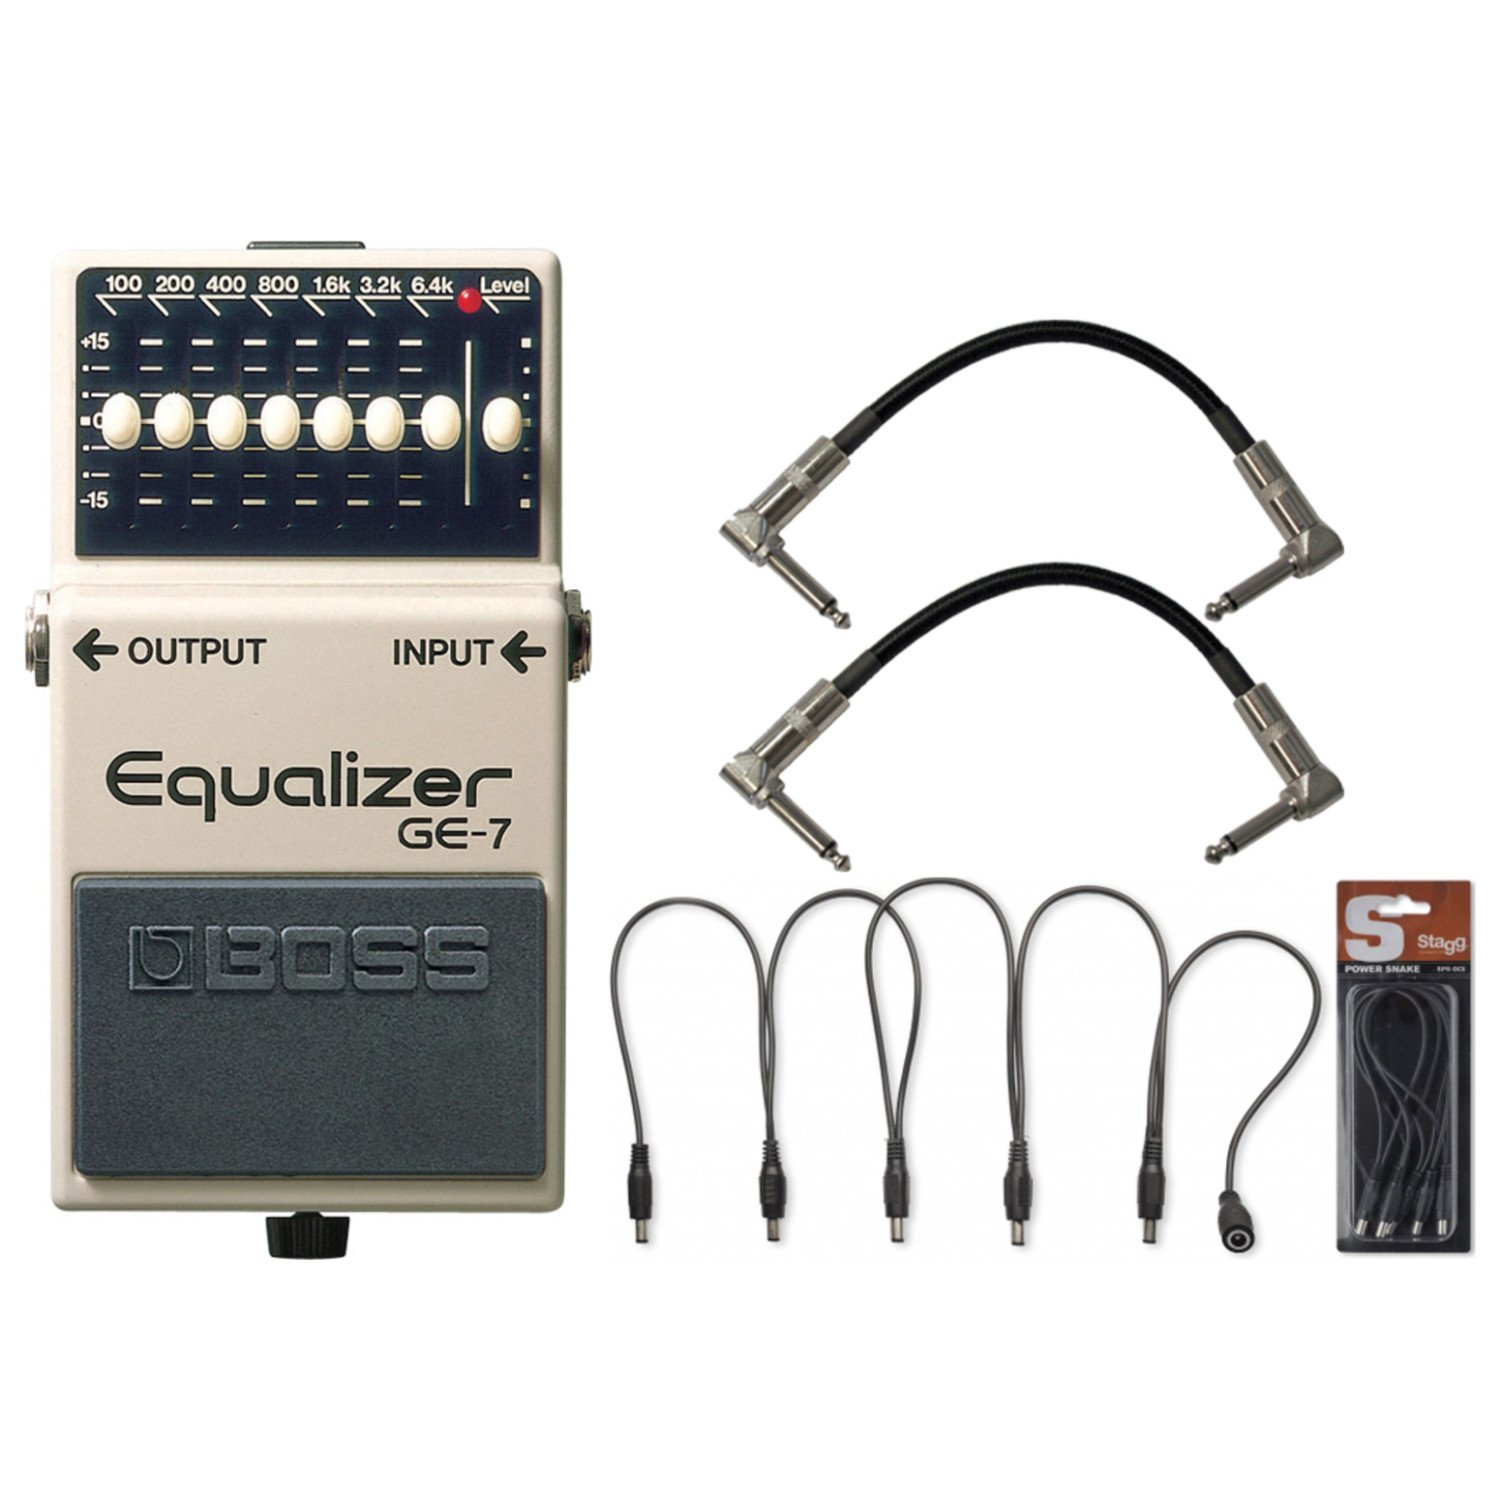 BOSS GE-7 Graphic Equalizer Pedal w/ Daisy Chain Power Cable and (2) 6'' Patch Cables